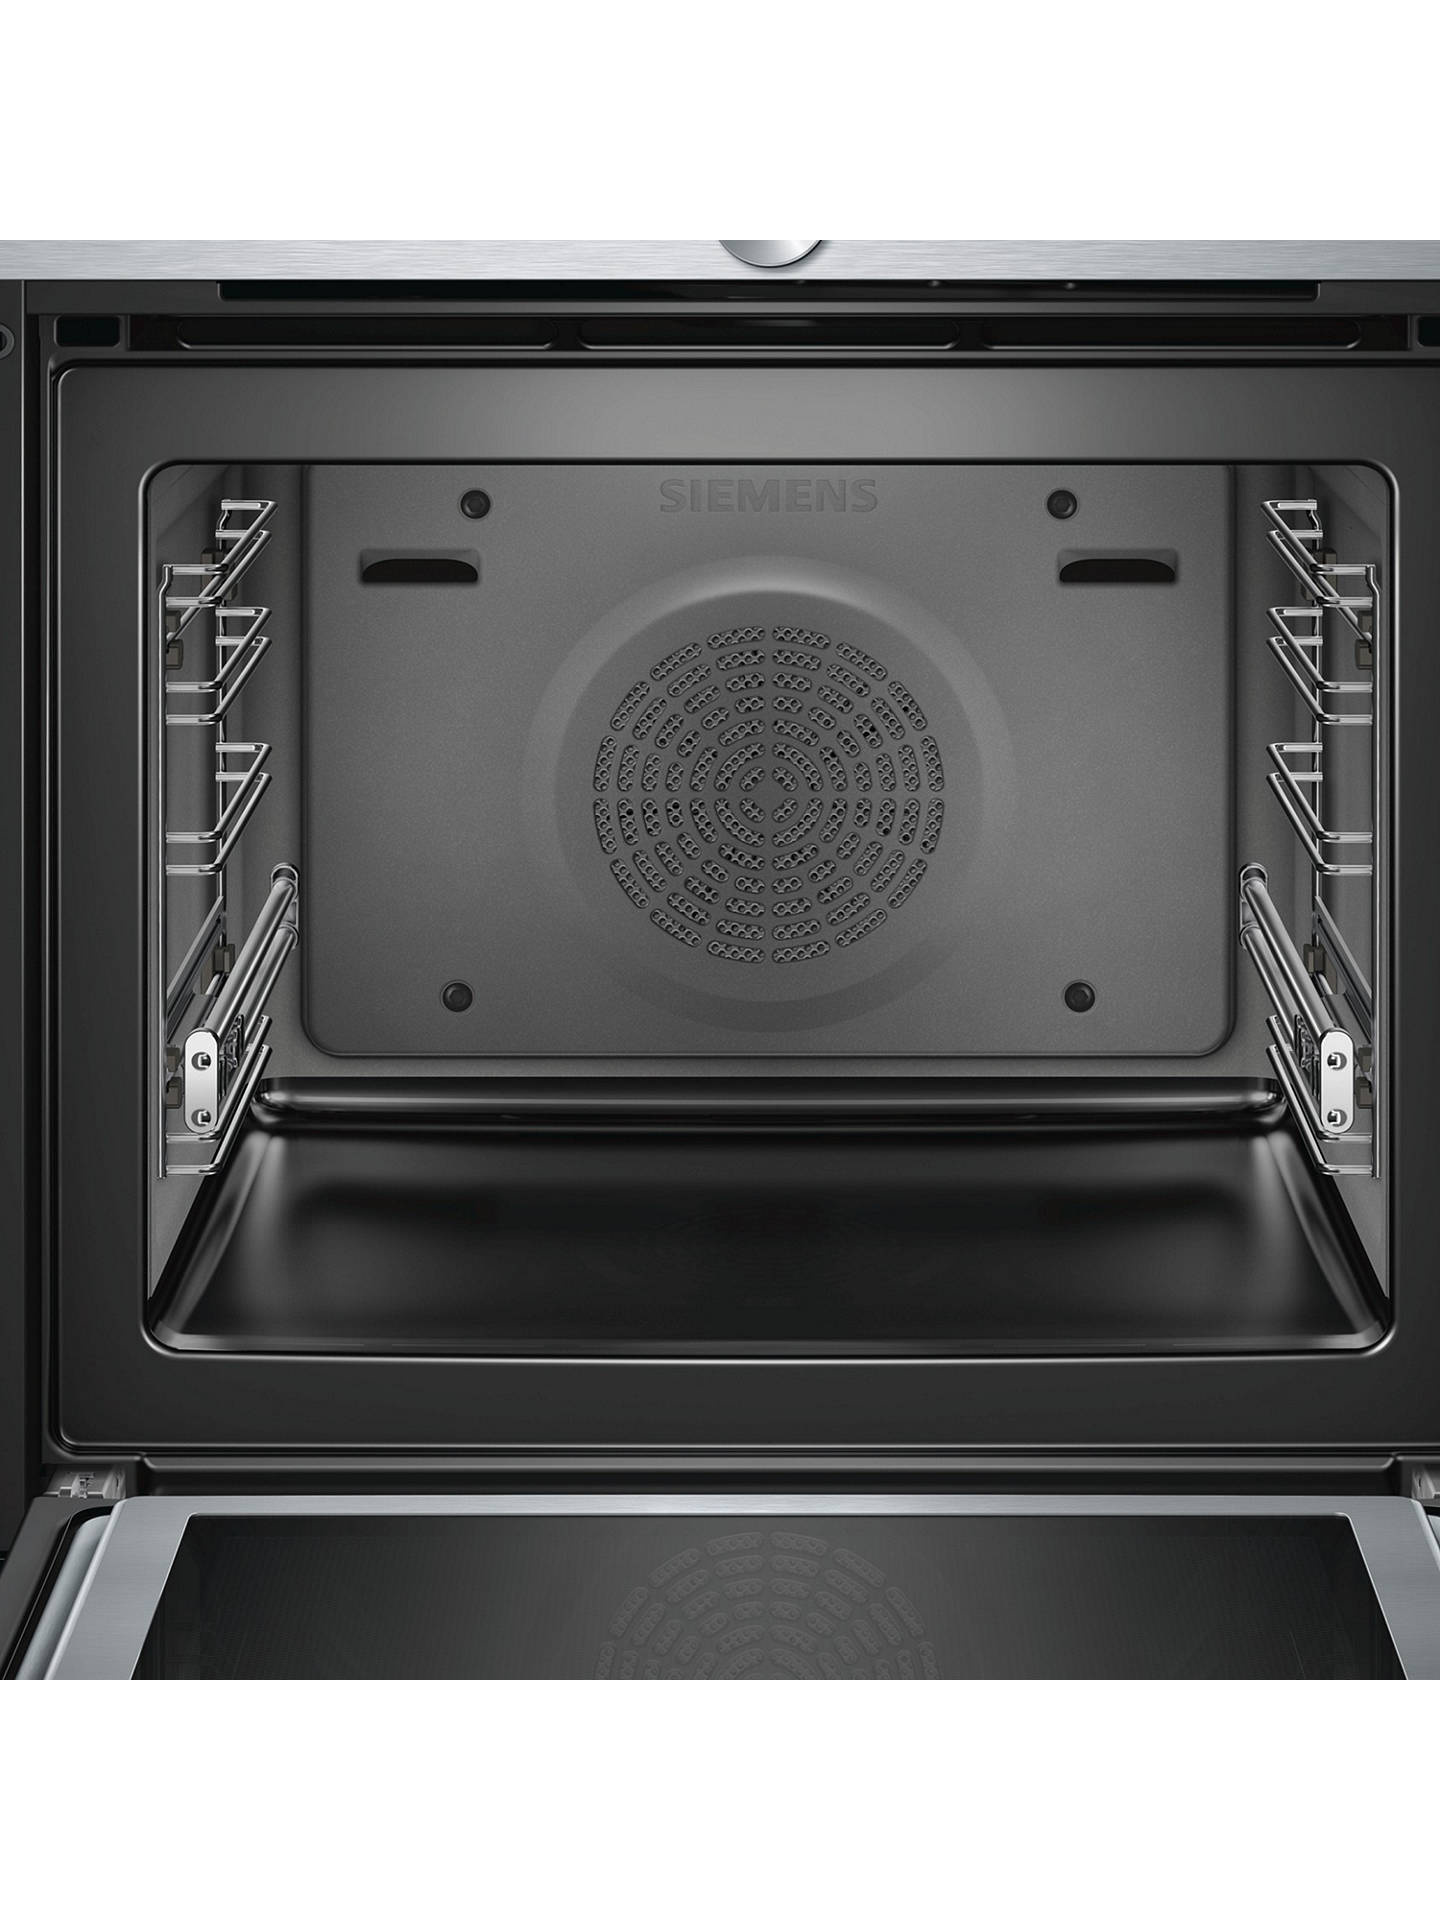 BuySiemens HM656GNS6B Built-In Single Oven with Microwave, Stainless Steel/Black Online at johnlewis.com